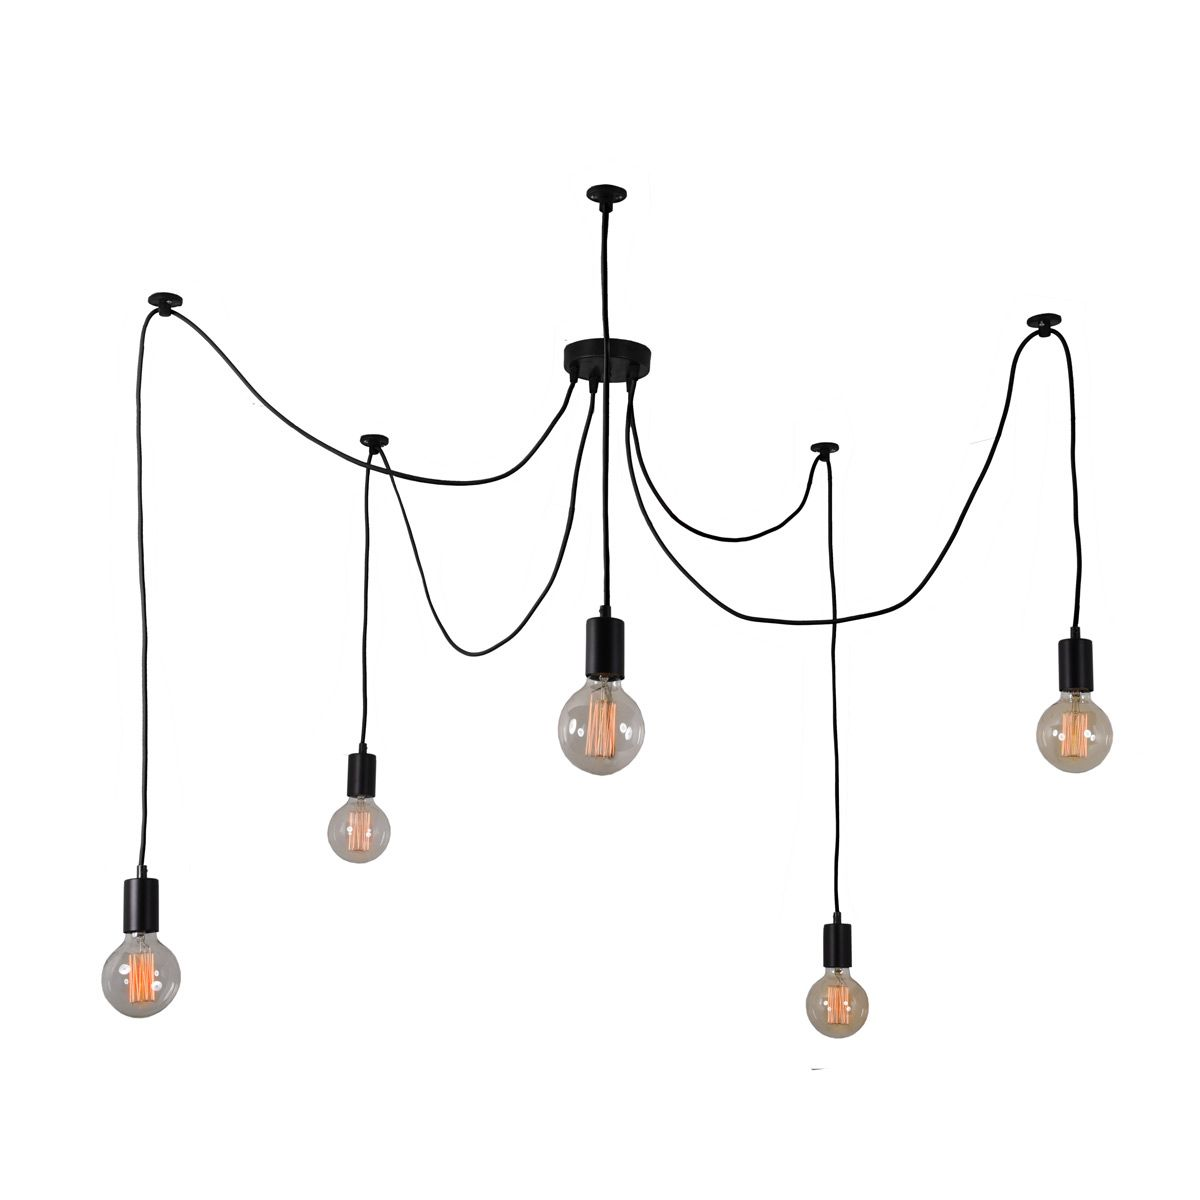 Suspension 5 Lumi Res Avec Ampoules Noir C Ble Noir Modulable